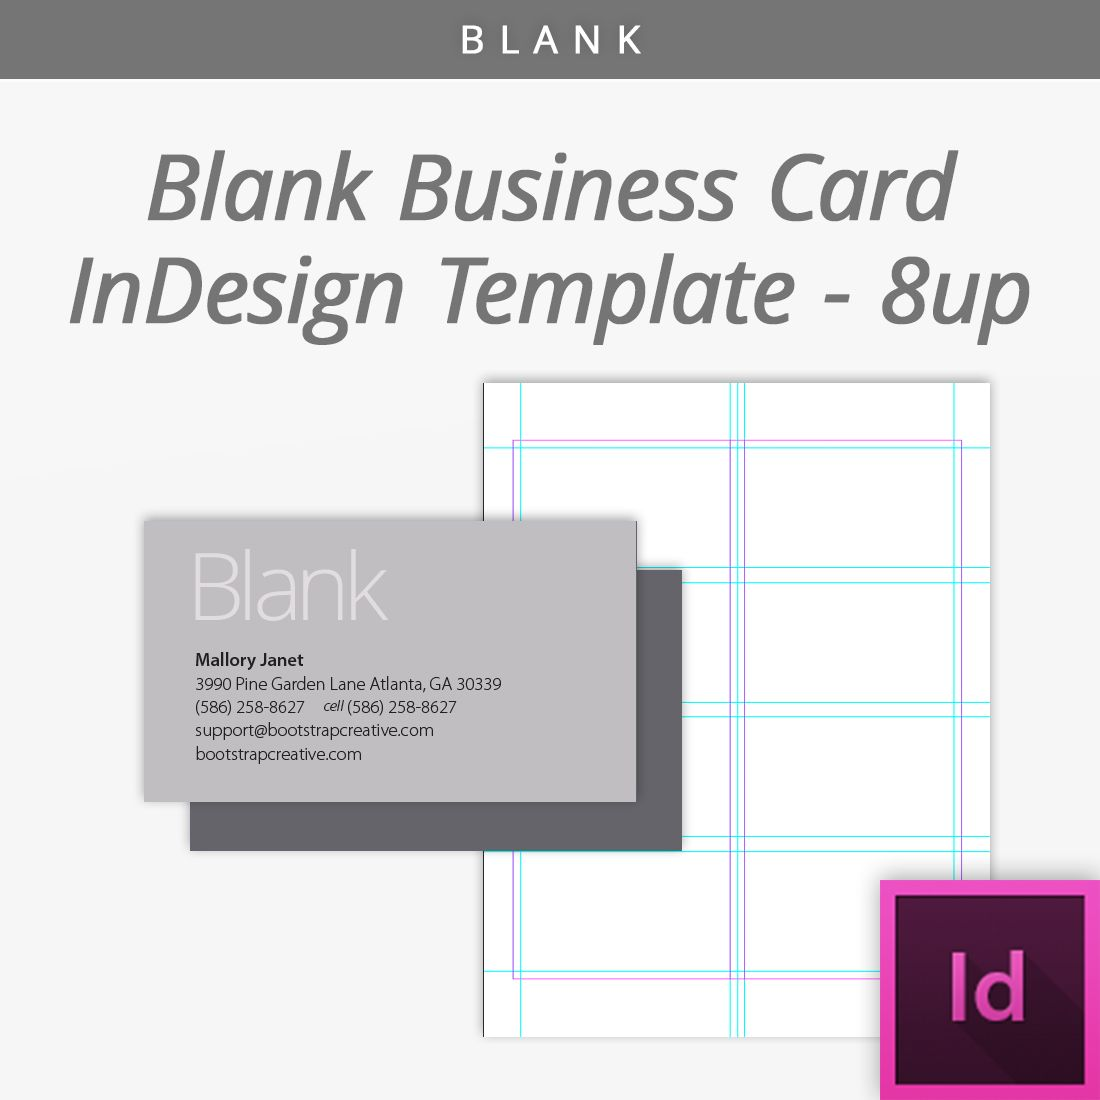 Blank indesign business card template 8 up free download blank indesign business card template 8 up free download designtemplate flashek Gallery